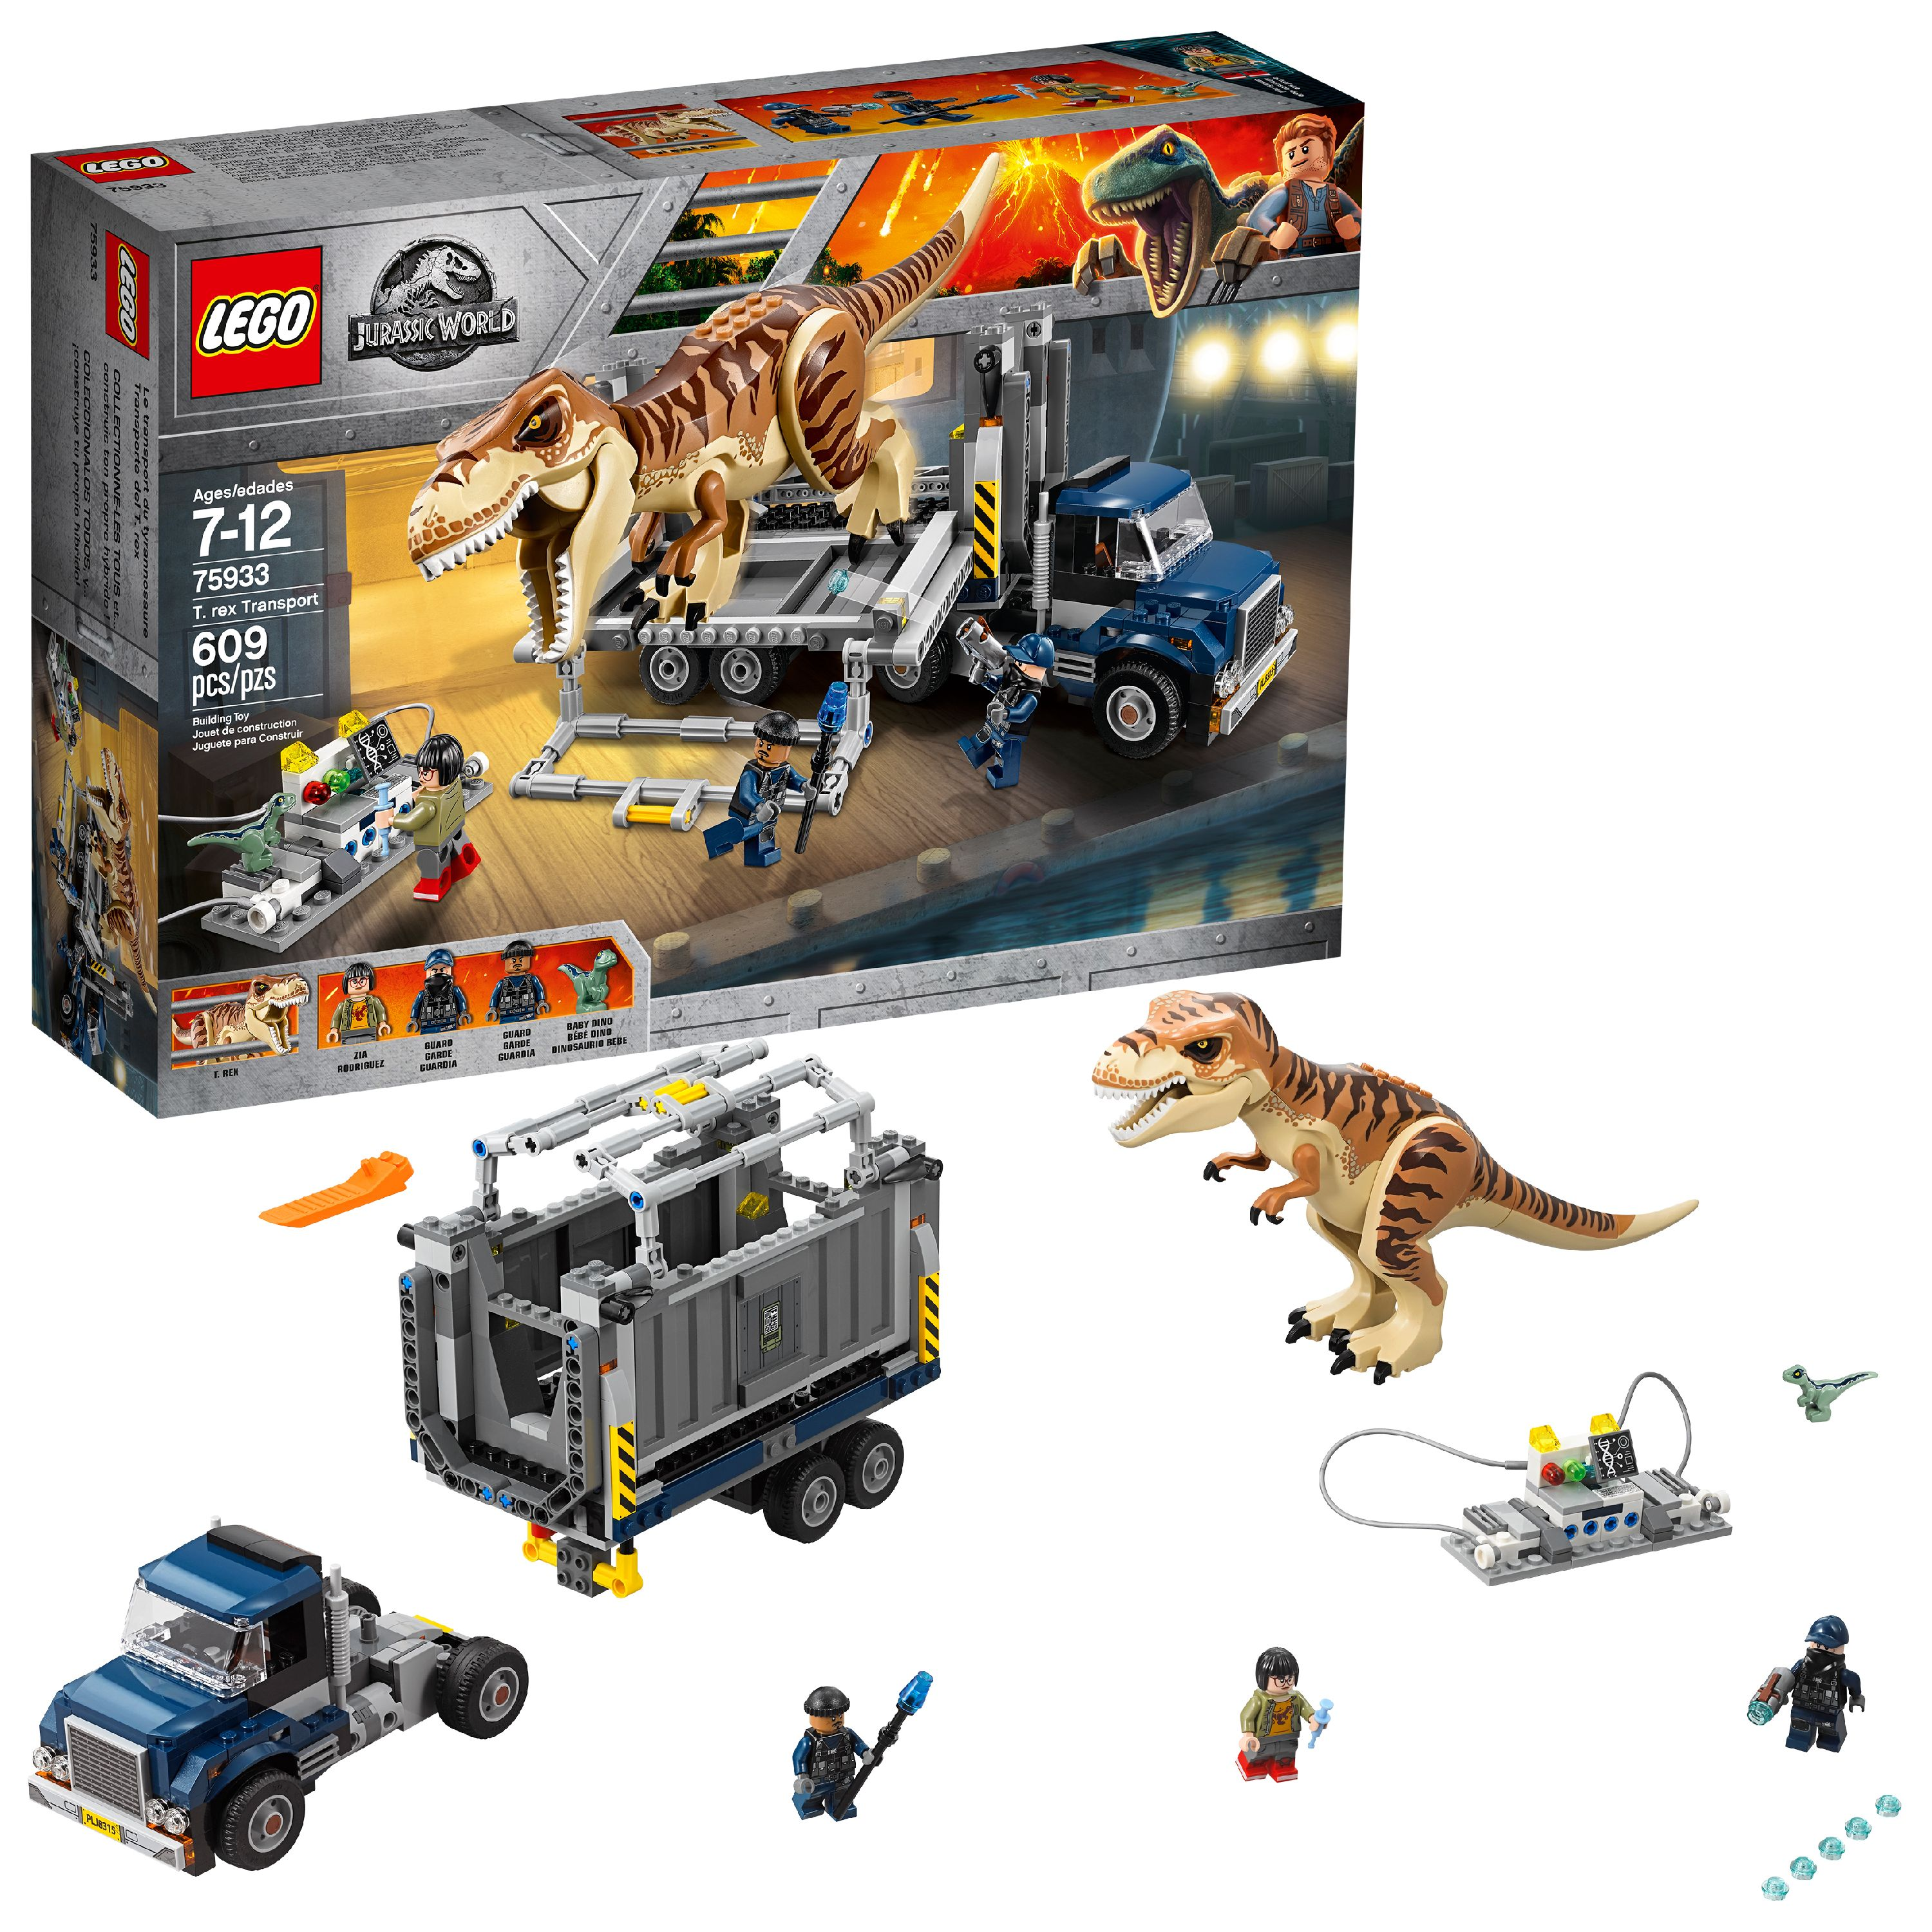 LEGO Jurassic World T. Rex Transport 75933 (609 Pieces)